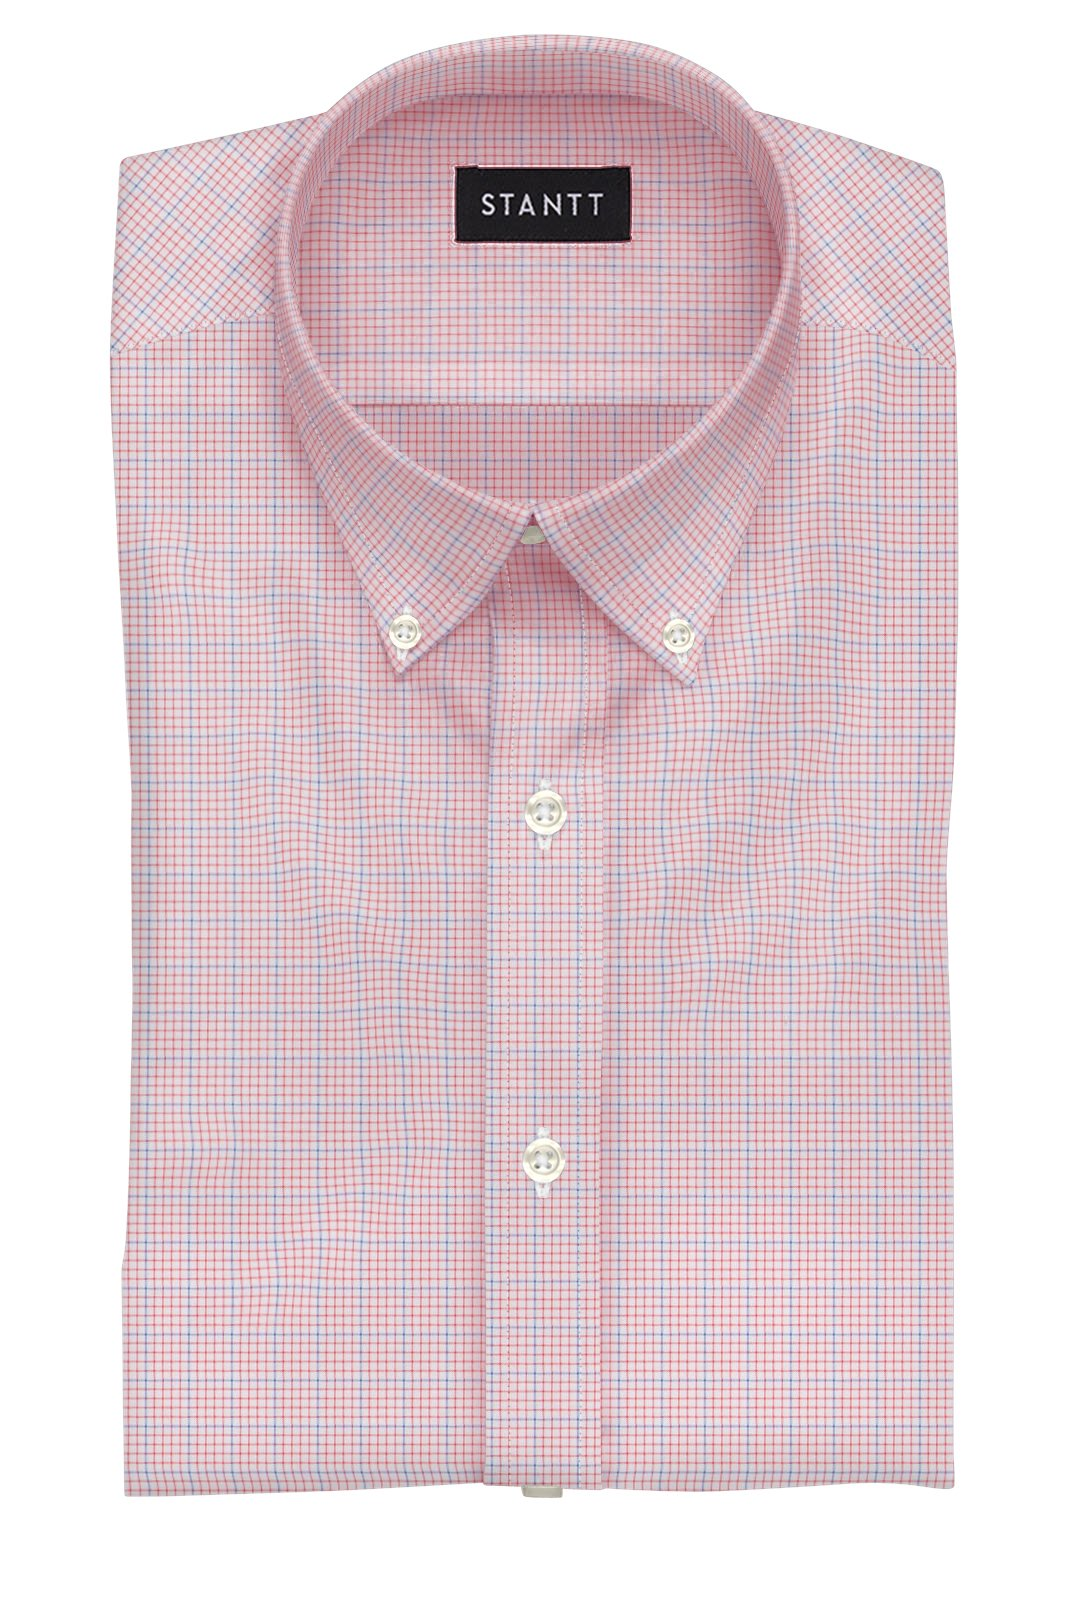 Crimson Red Grid Check: Button-Down Collar, Barrel Cuff